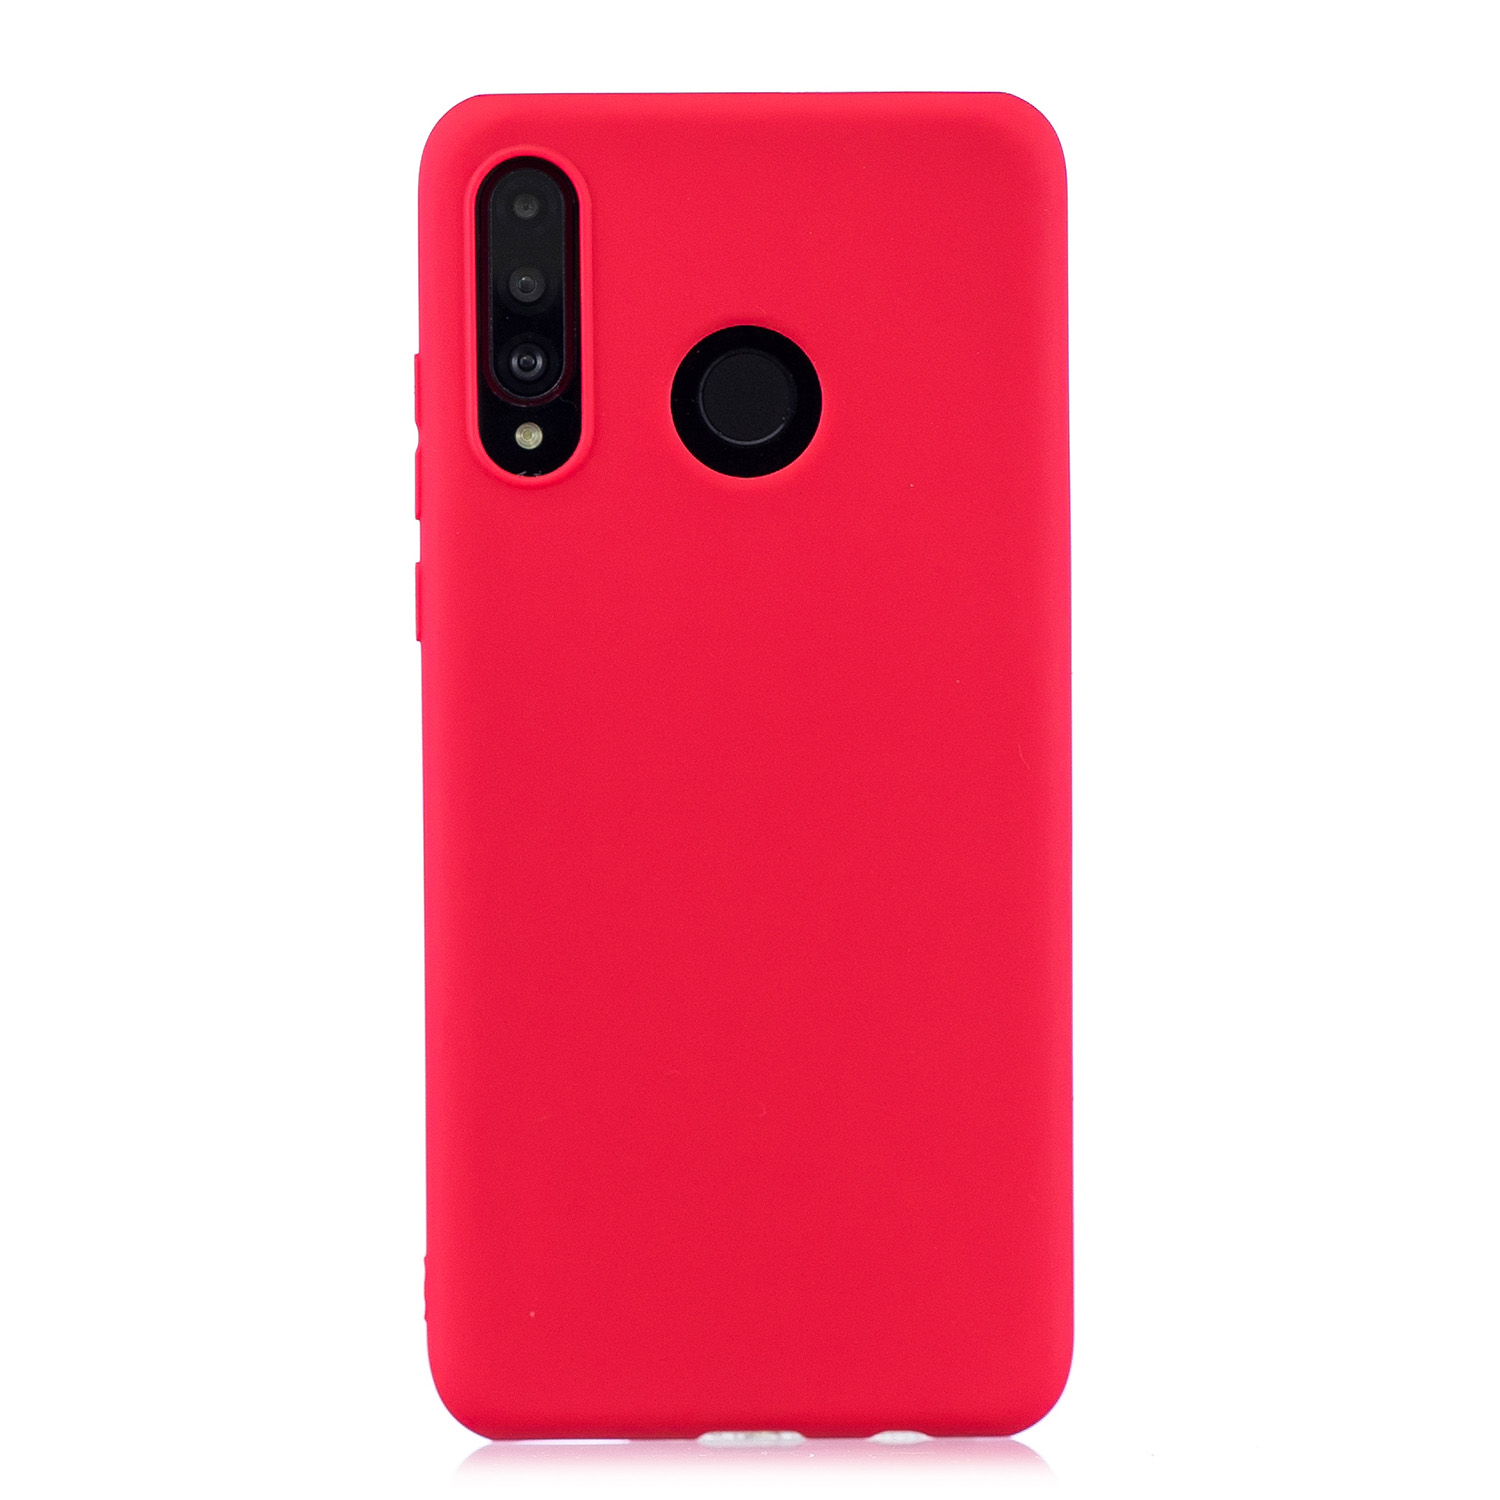 For HUAWEI P30 LITE/NOVA 4E Lovely Candy Color Matte TPU Anti-scratch Non-slip Protective Cover Back Case red